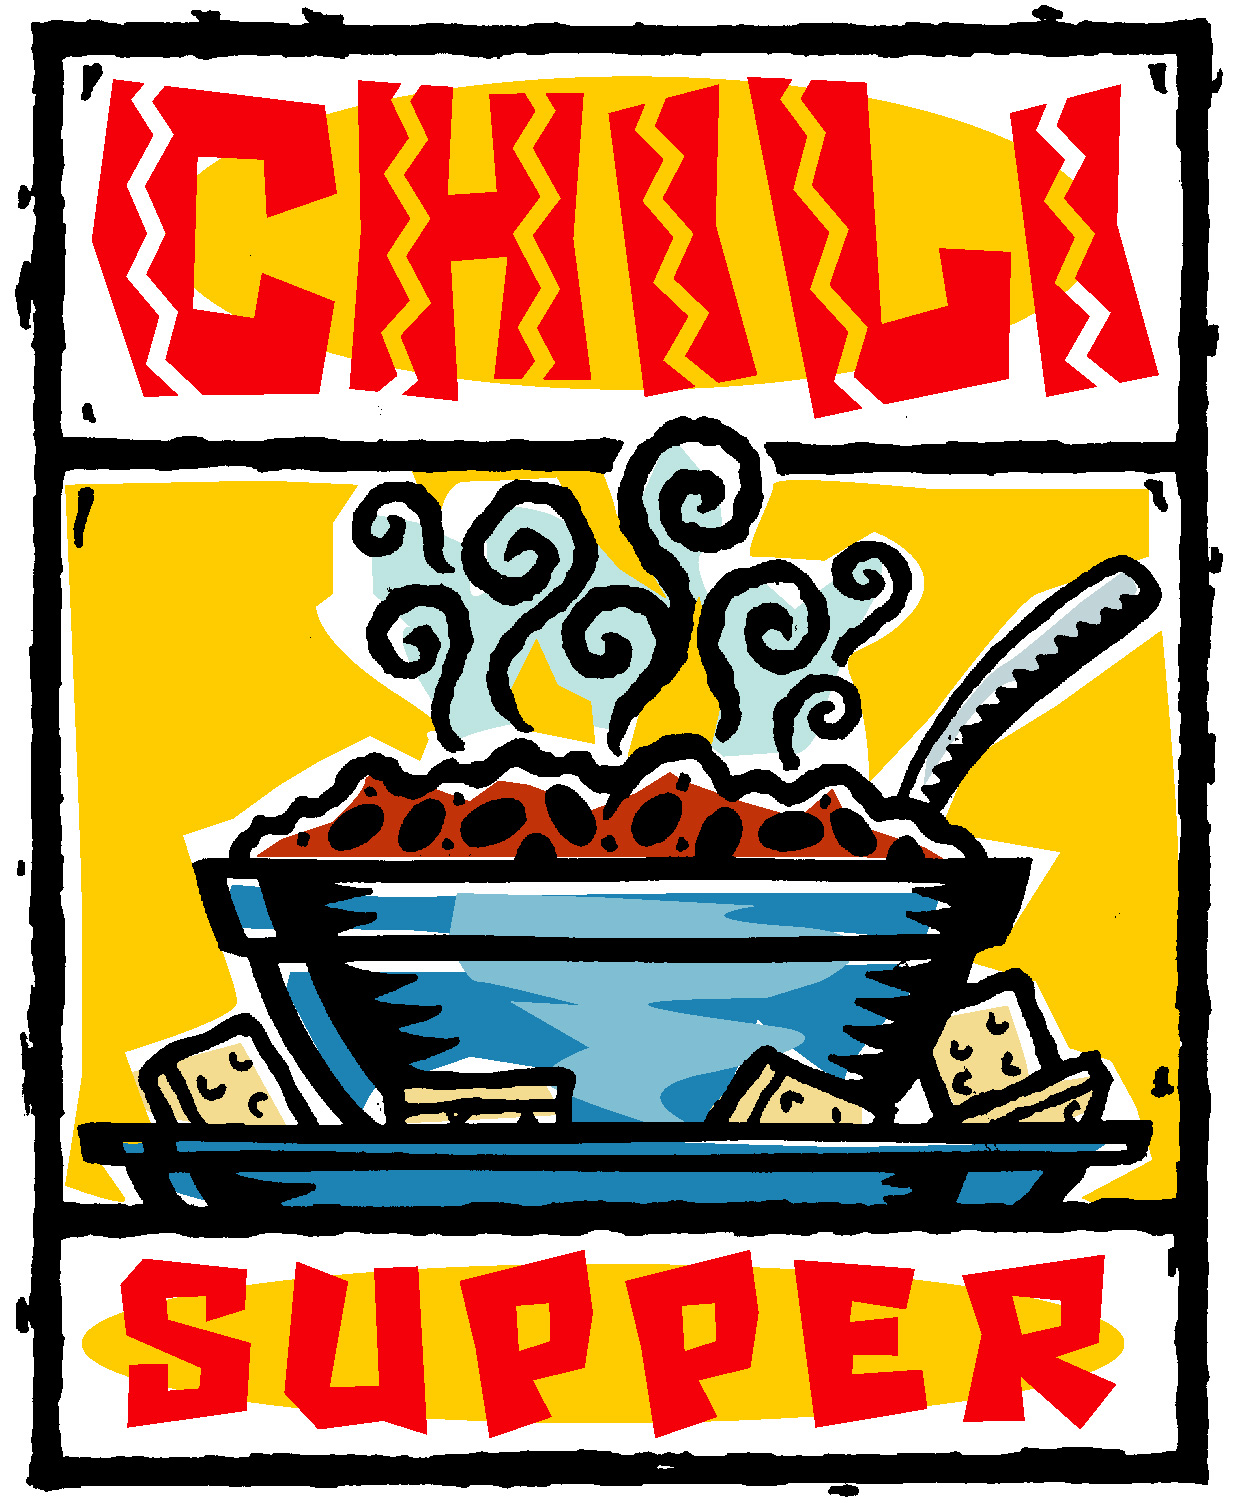 brookston vfd chili and stew supper saturday easttexasradio com hayride clip art images haunted hayride clipart